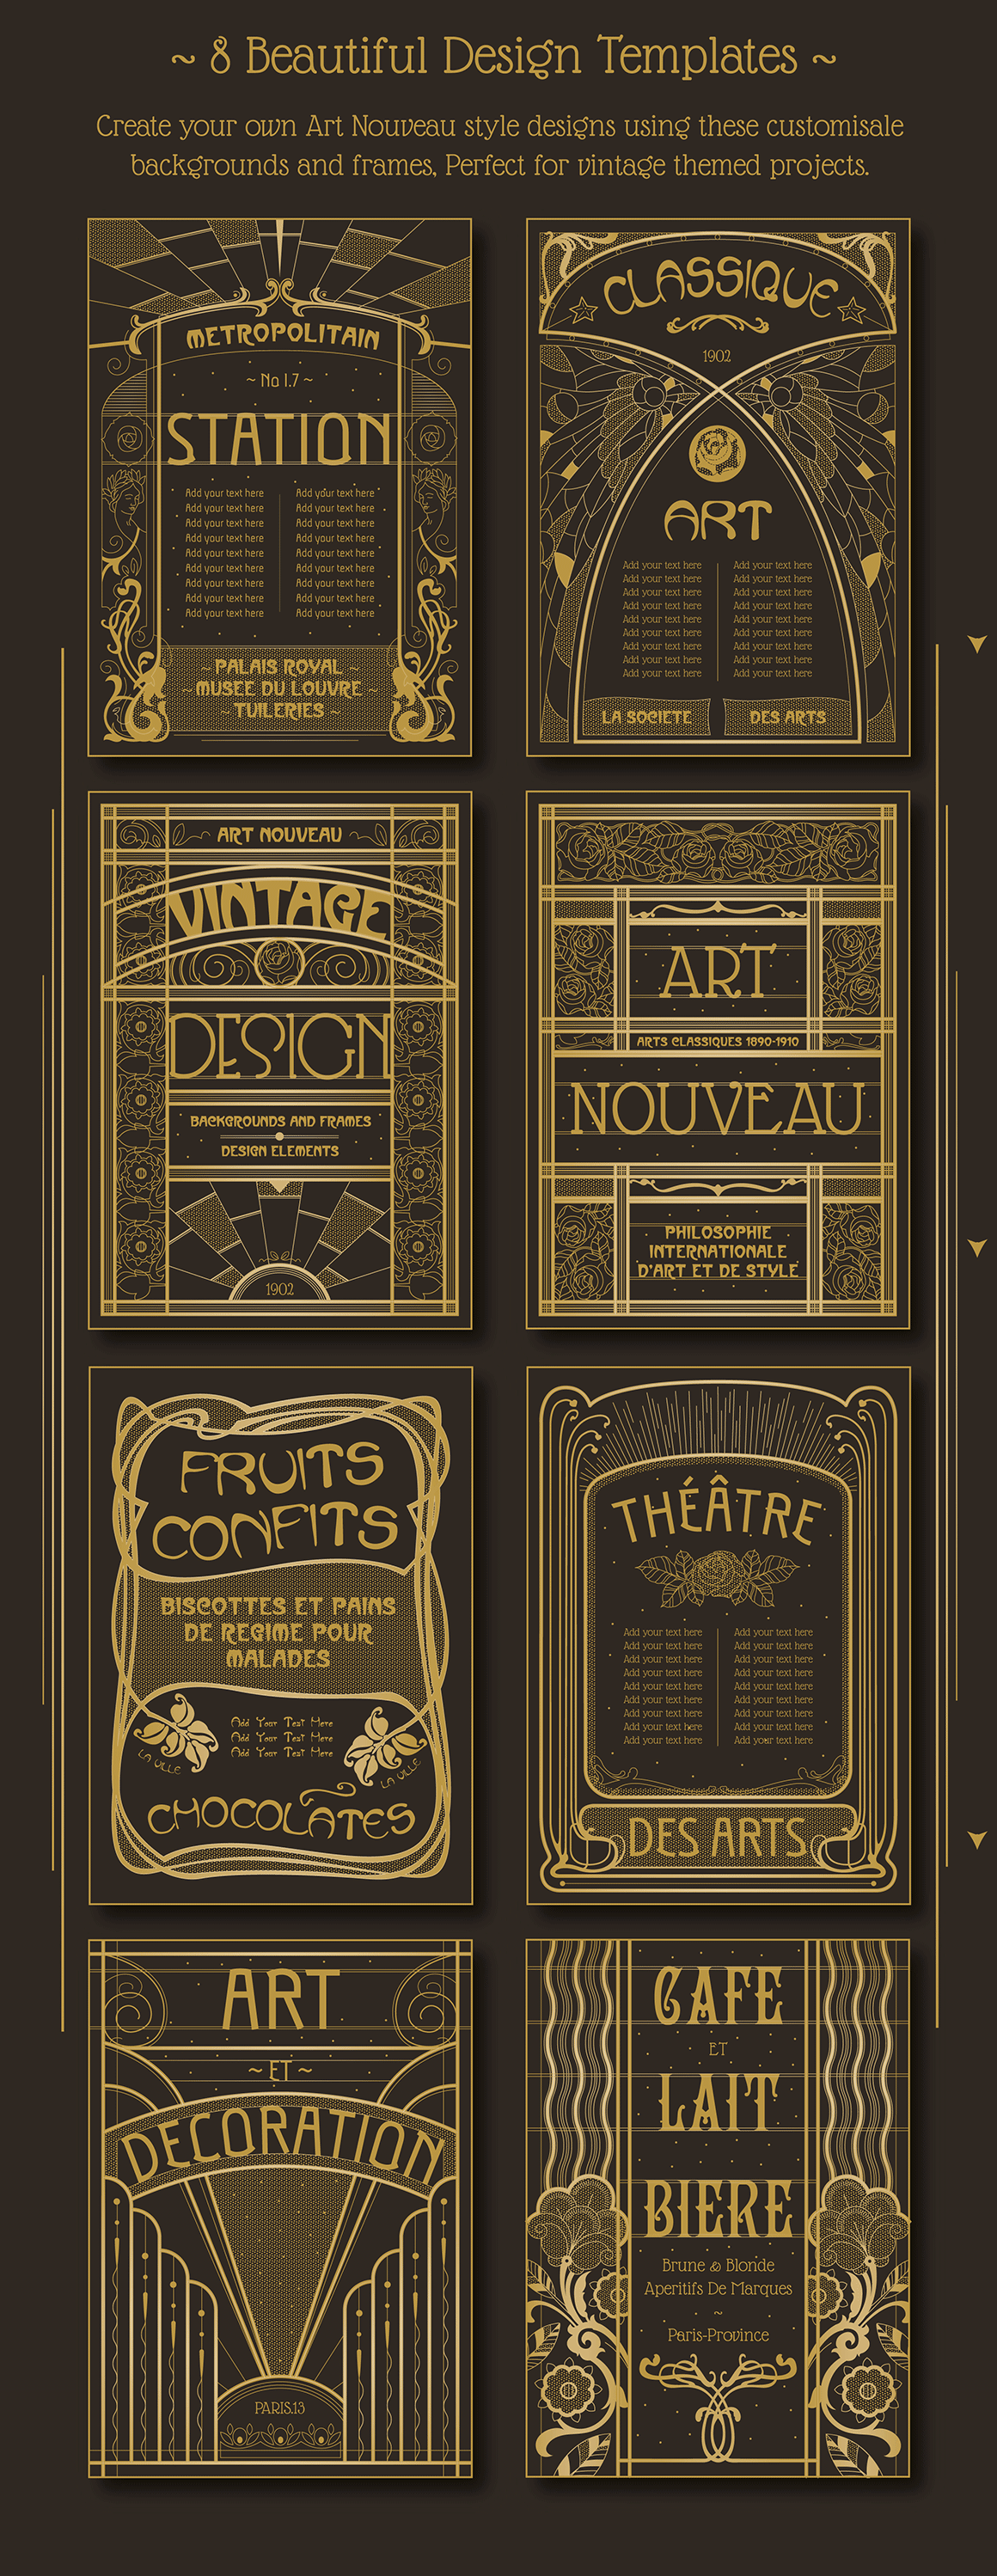 Vintage Art Nouveau Design Templates